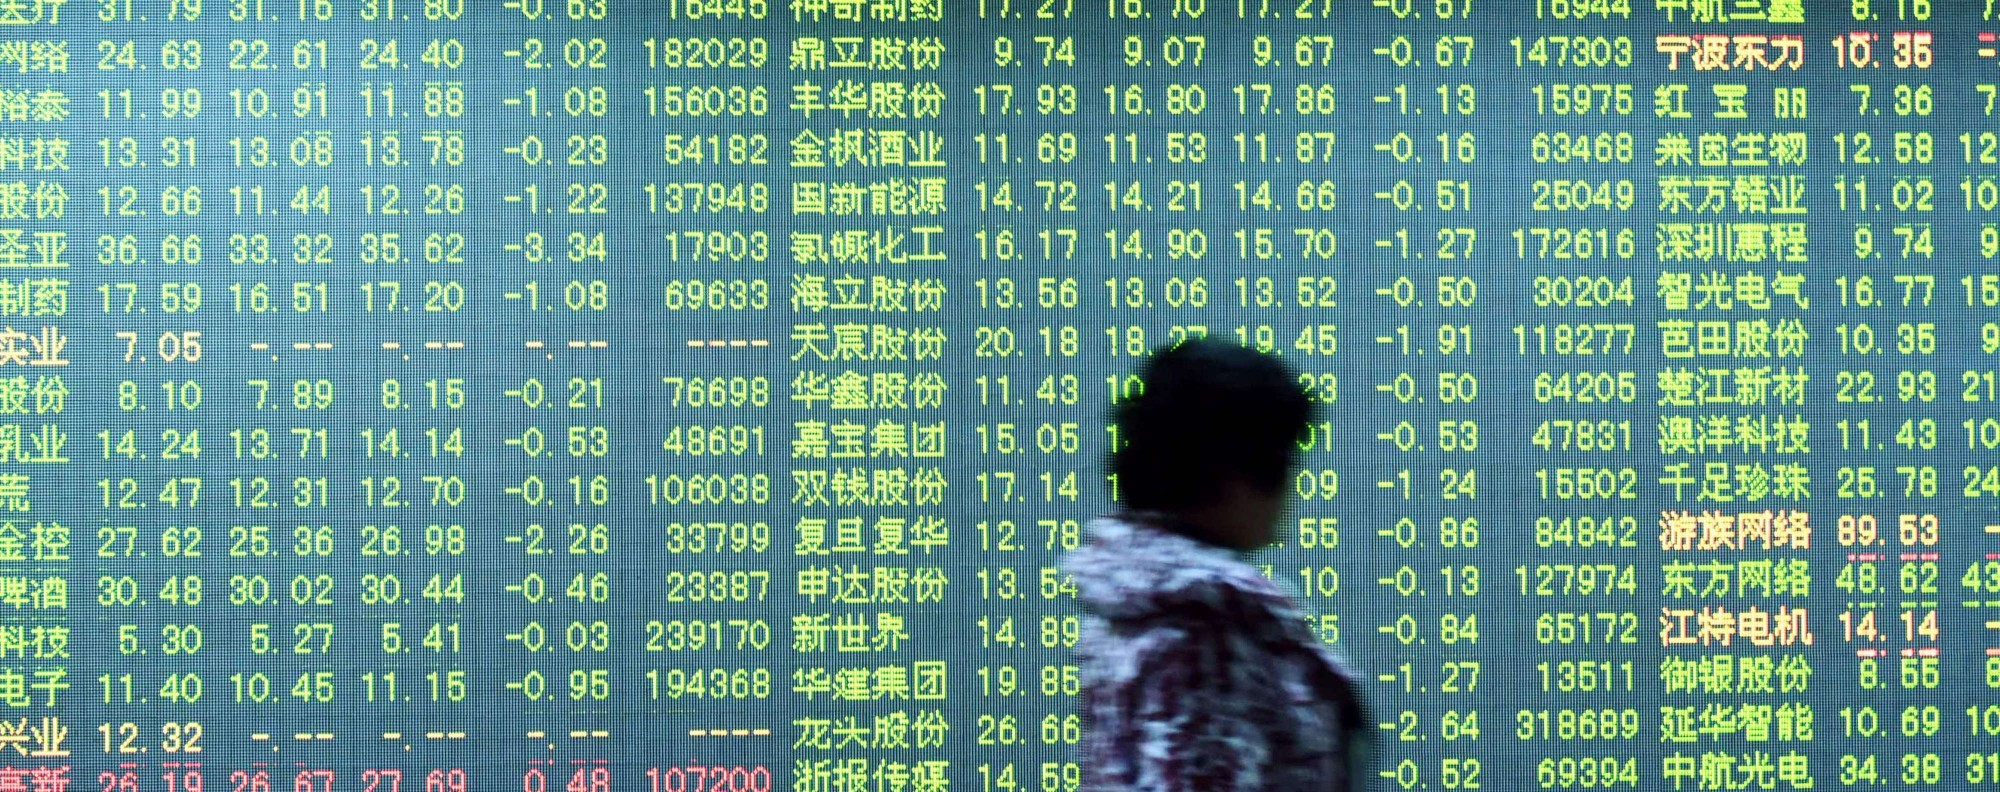 (FILES) This file photo taken on January 11, 2016 shows an investor walking past a screen showing stock market movements at a securities firm in Hangzhou in eastern China's Zhejiang province. China is the world's second-largest economy and has one of the fastest growth rates of any G20 nation, but its stock markets have been among the worst performing in the world this year. / AFP PHOTO / STR / China OUT / TO GO WITH China economy stocks, FOCUS by Albee ZHANG